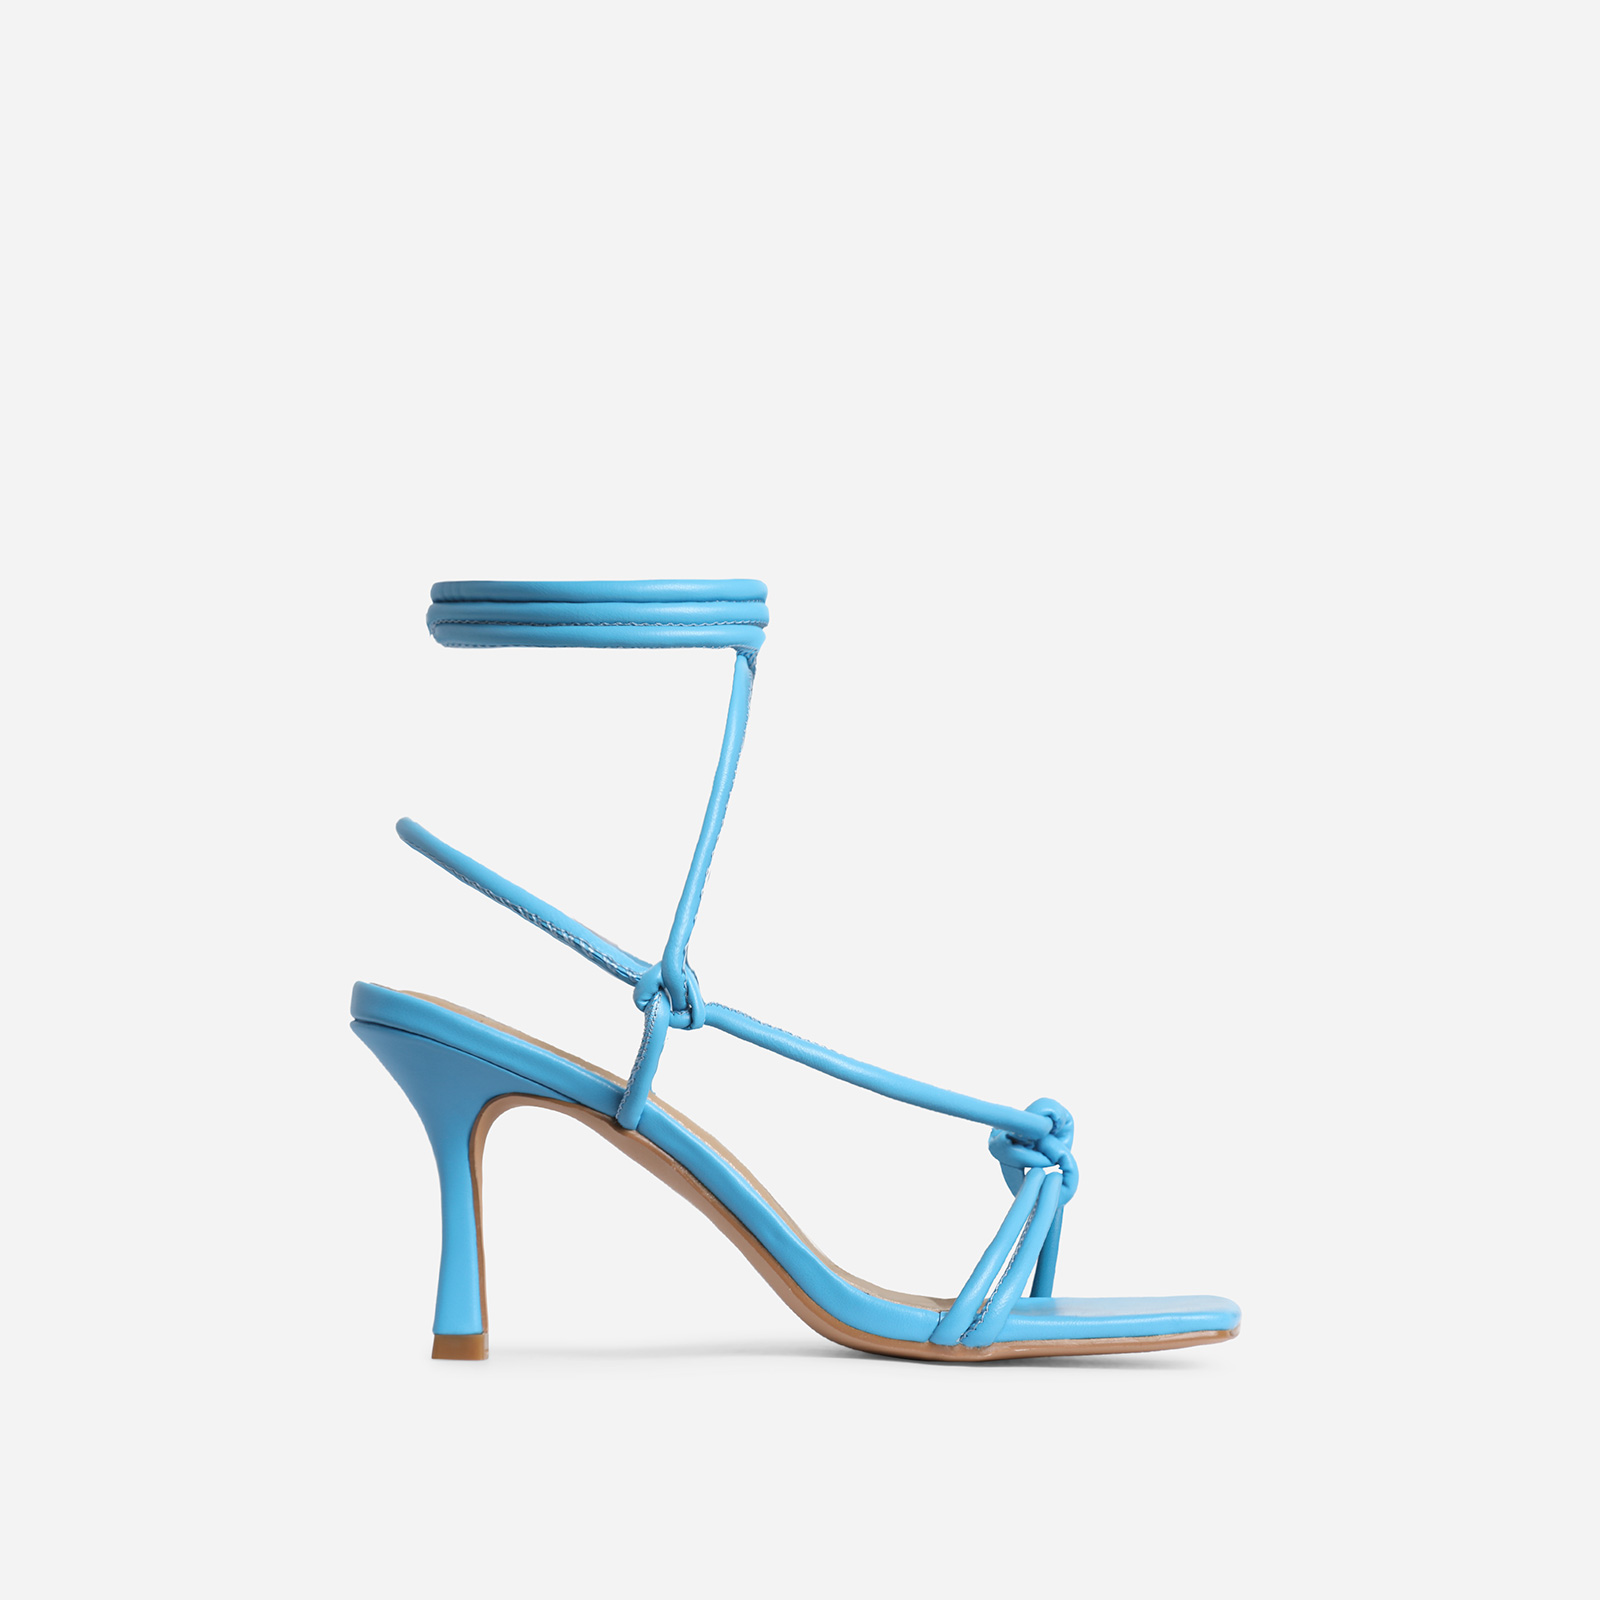 Priya Square Toe Lace Up Heel In Blue Faux Leather